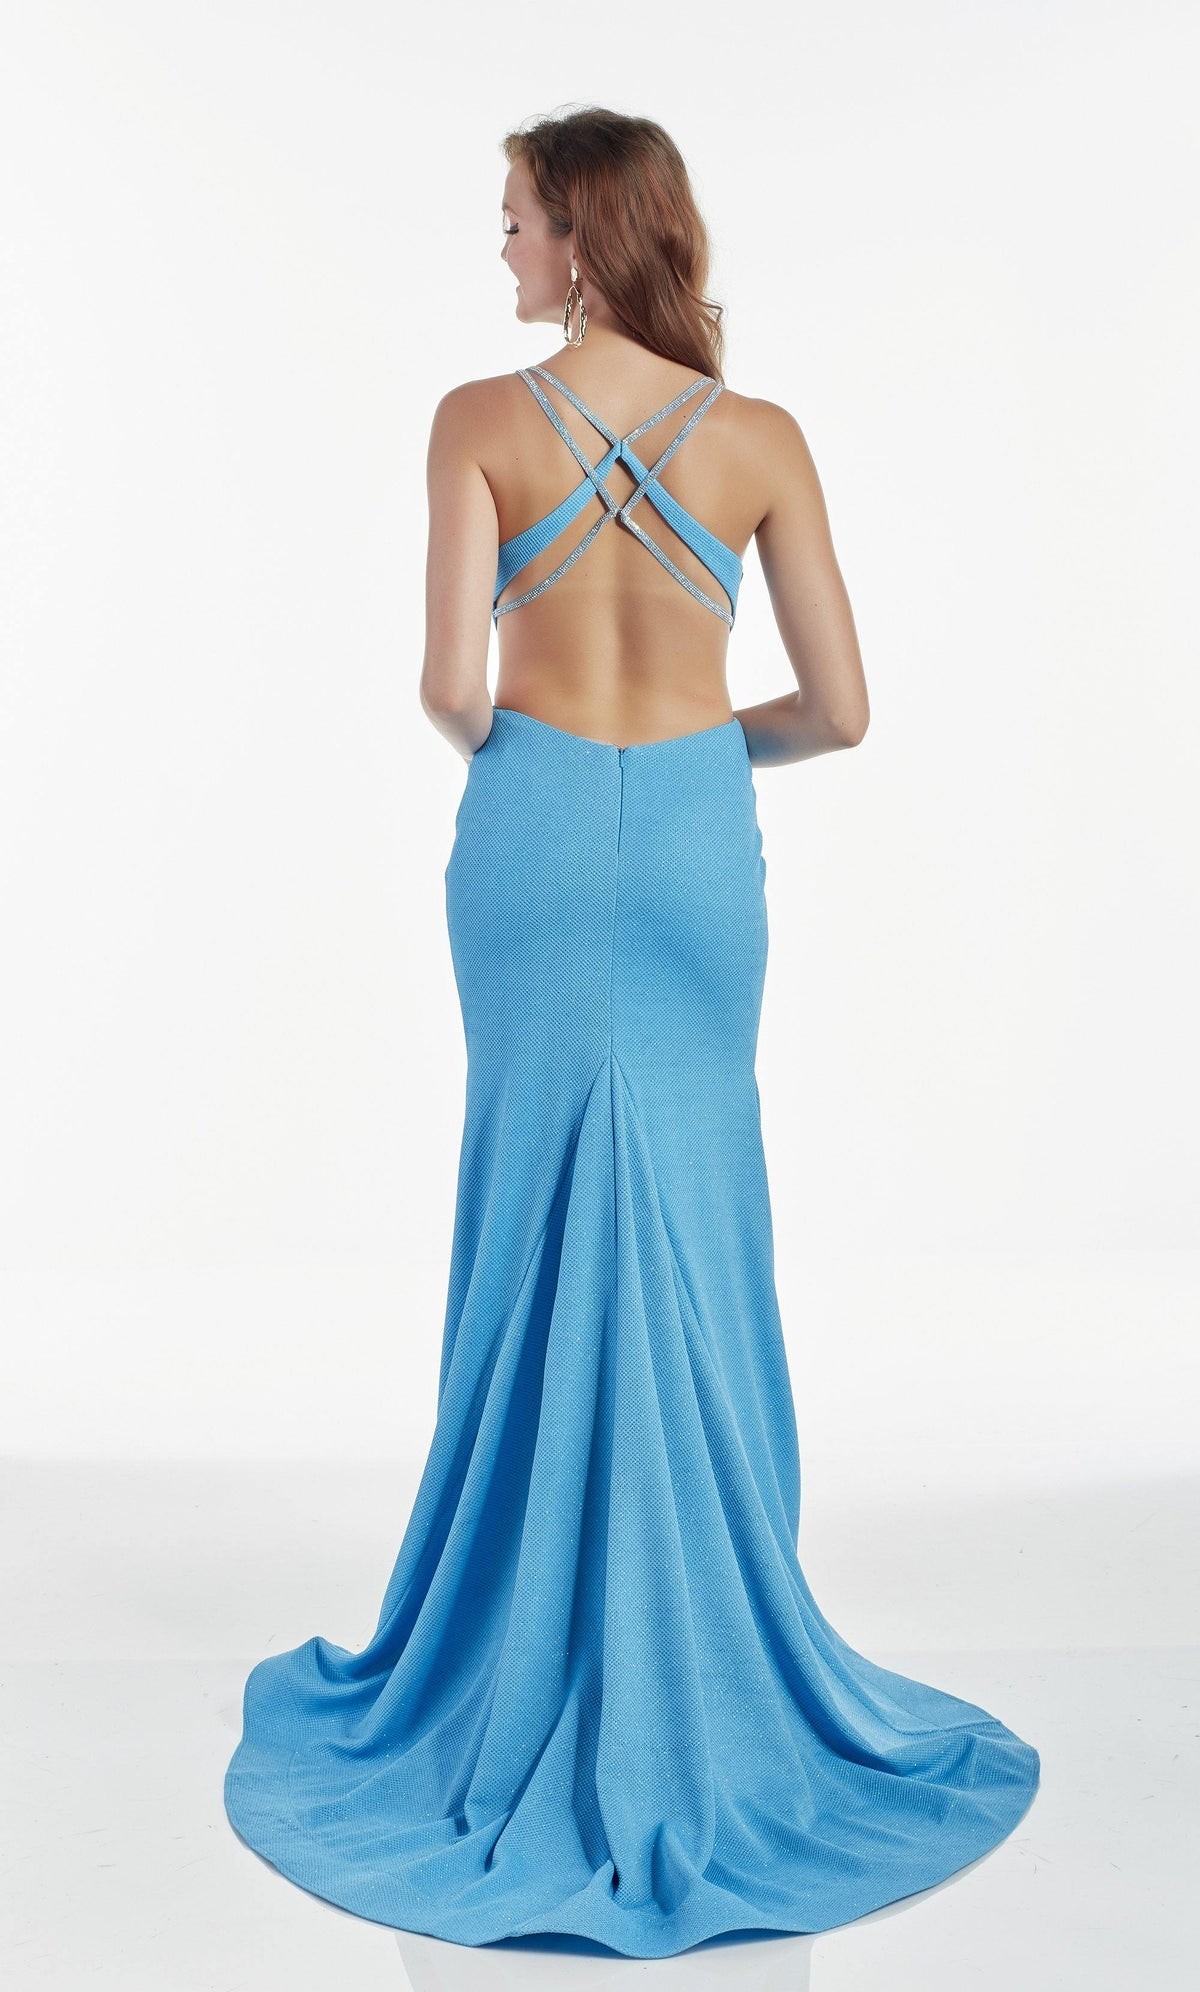 Ocean Blue wedding guest dress with a strappy open back and train